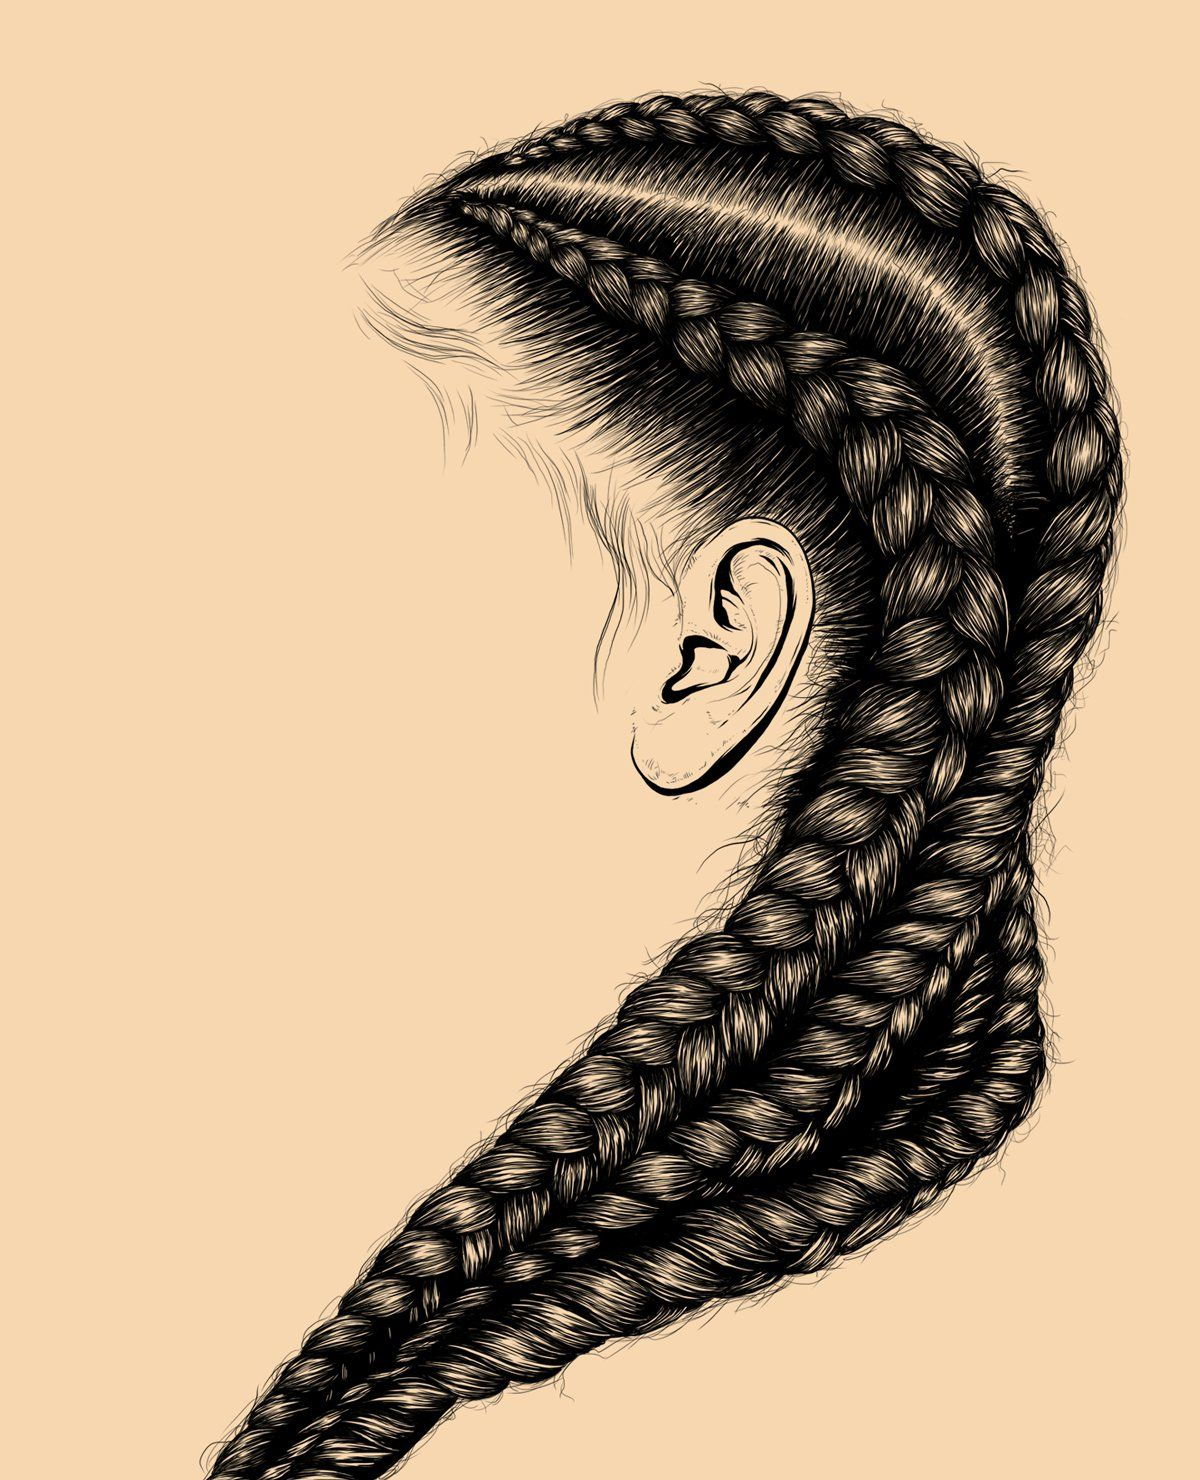 hair illustration digital art